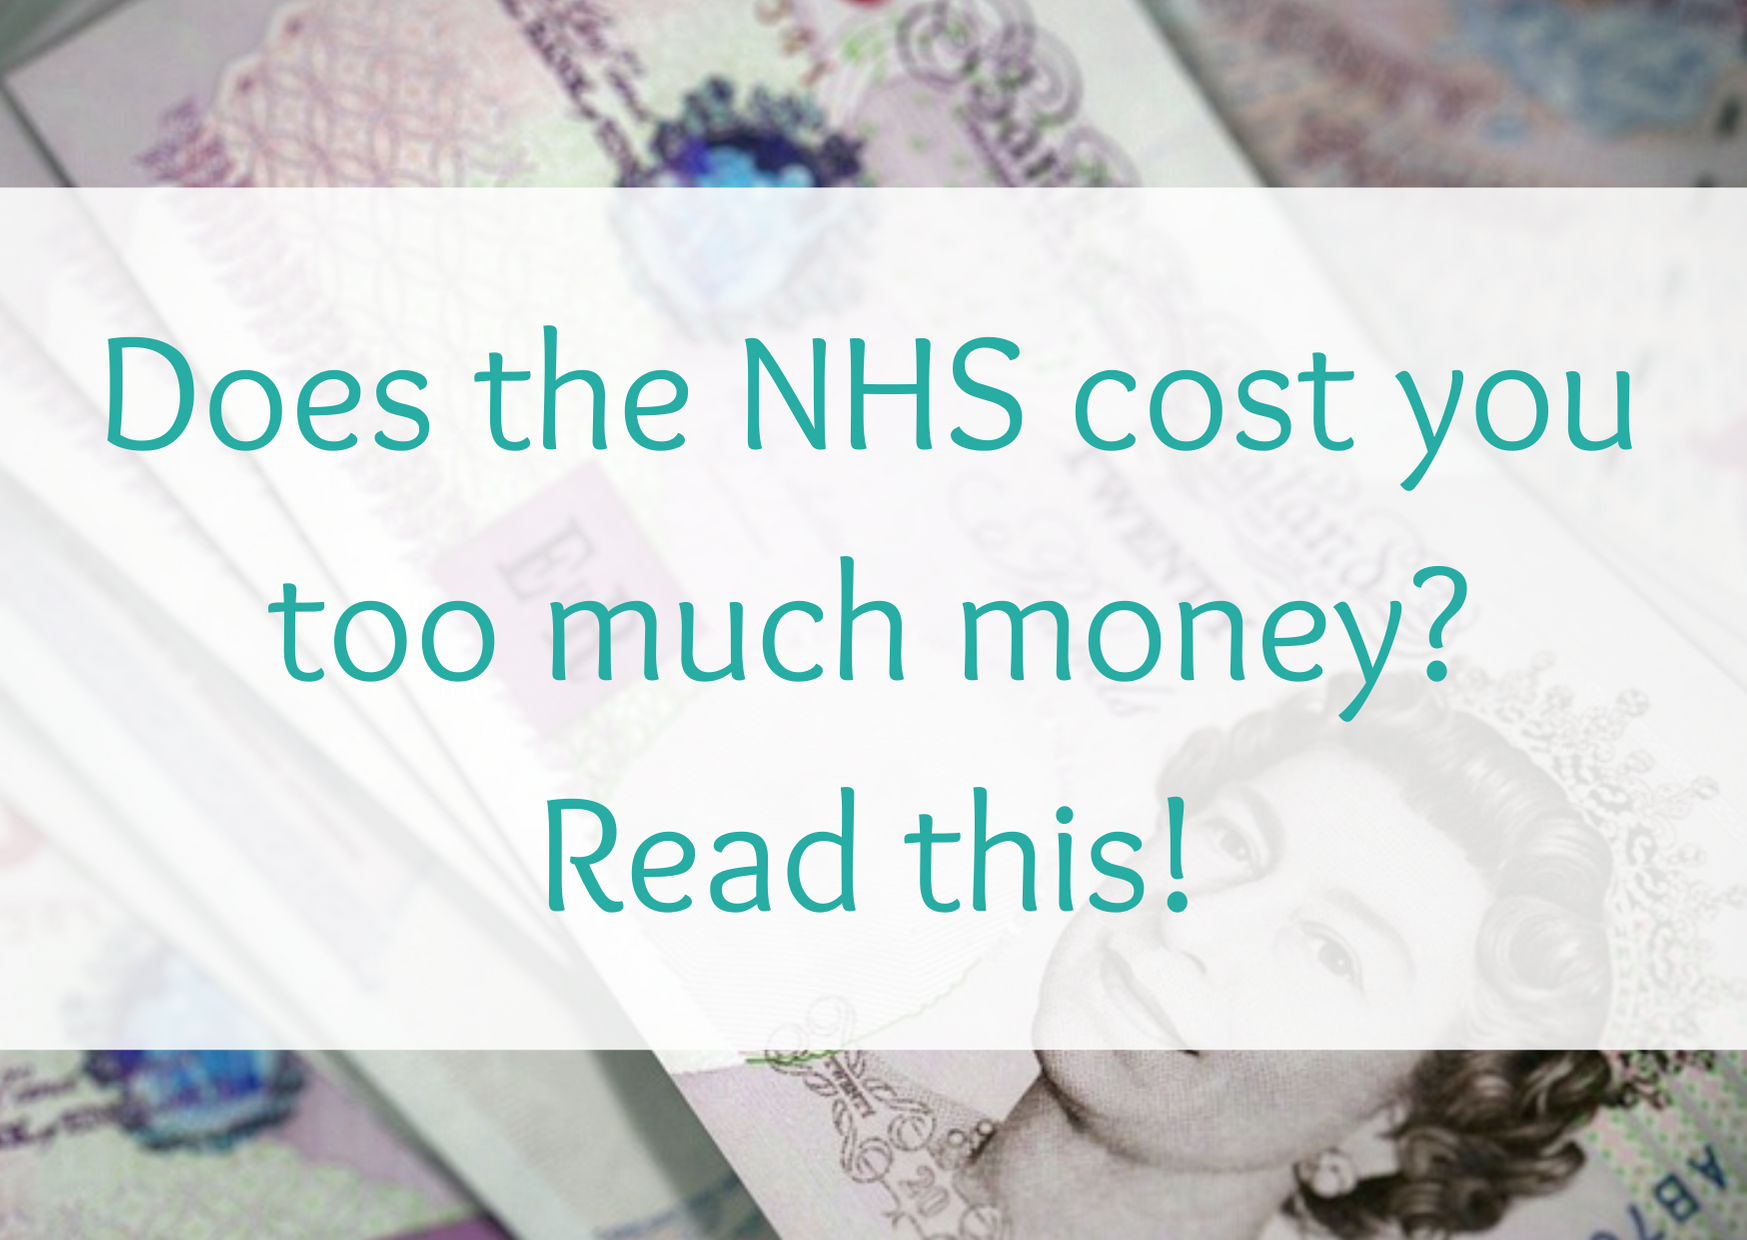 Does the NHS cost you too much money?